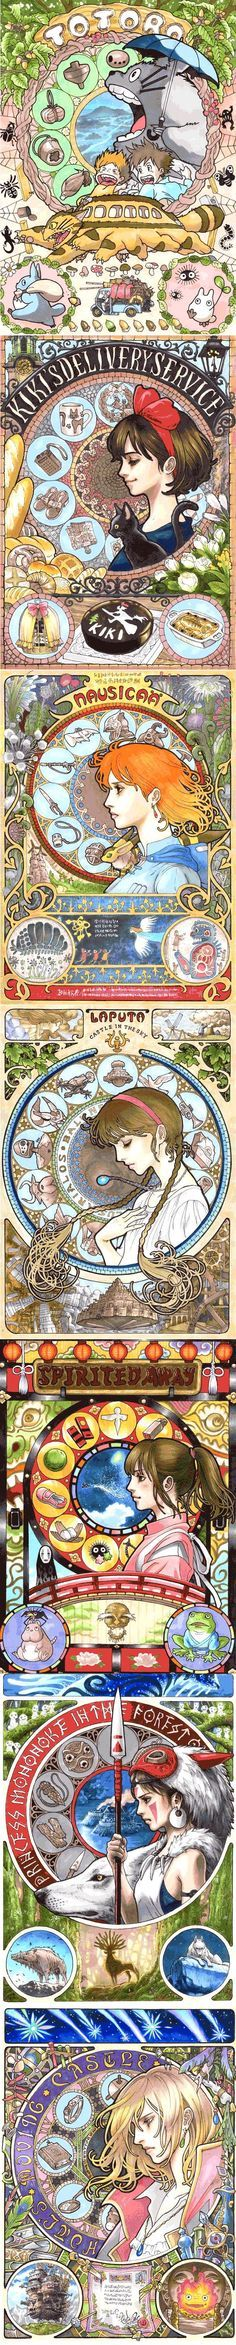 Pixiv user marlboro creates richly detailed portraits of the characters from Hayao Miyazaki's films. Each art nouveau-flavored illustration is packed with images and symbols from each movie.